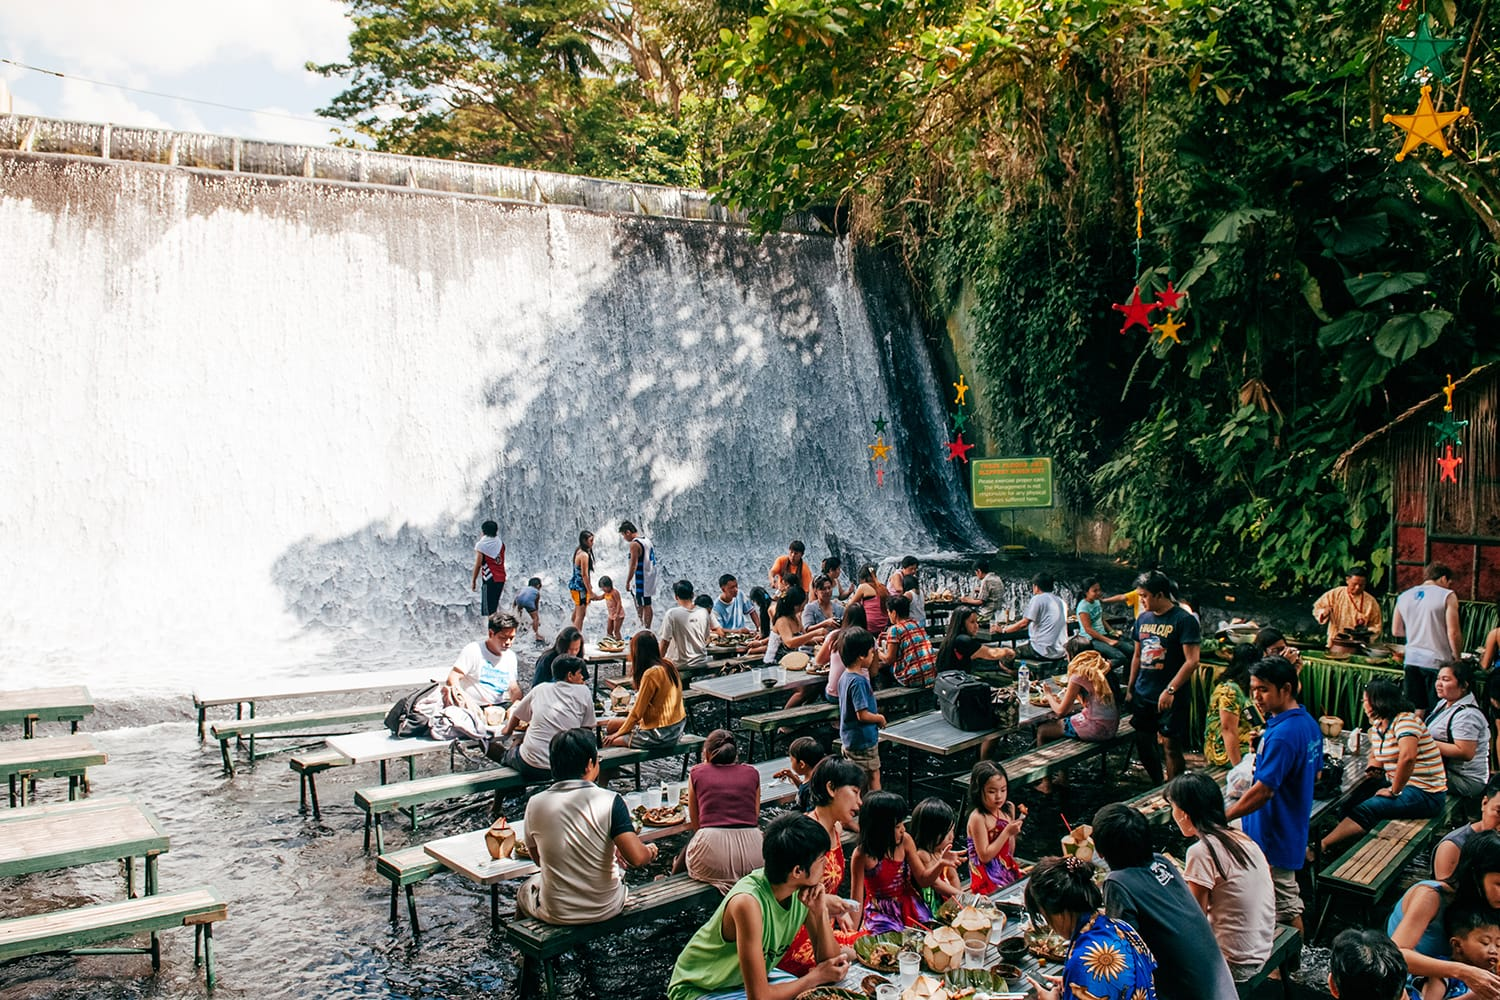 Restaurant in waterfall in Villa Escudero, San Pablo, Philippines